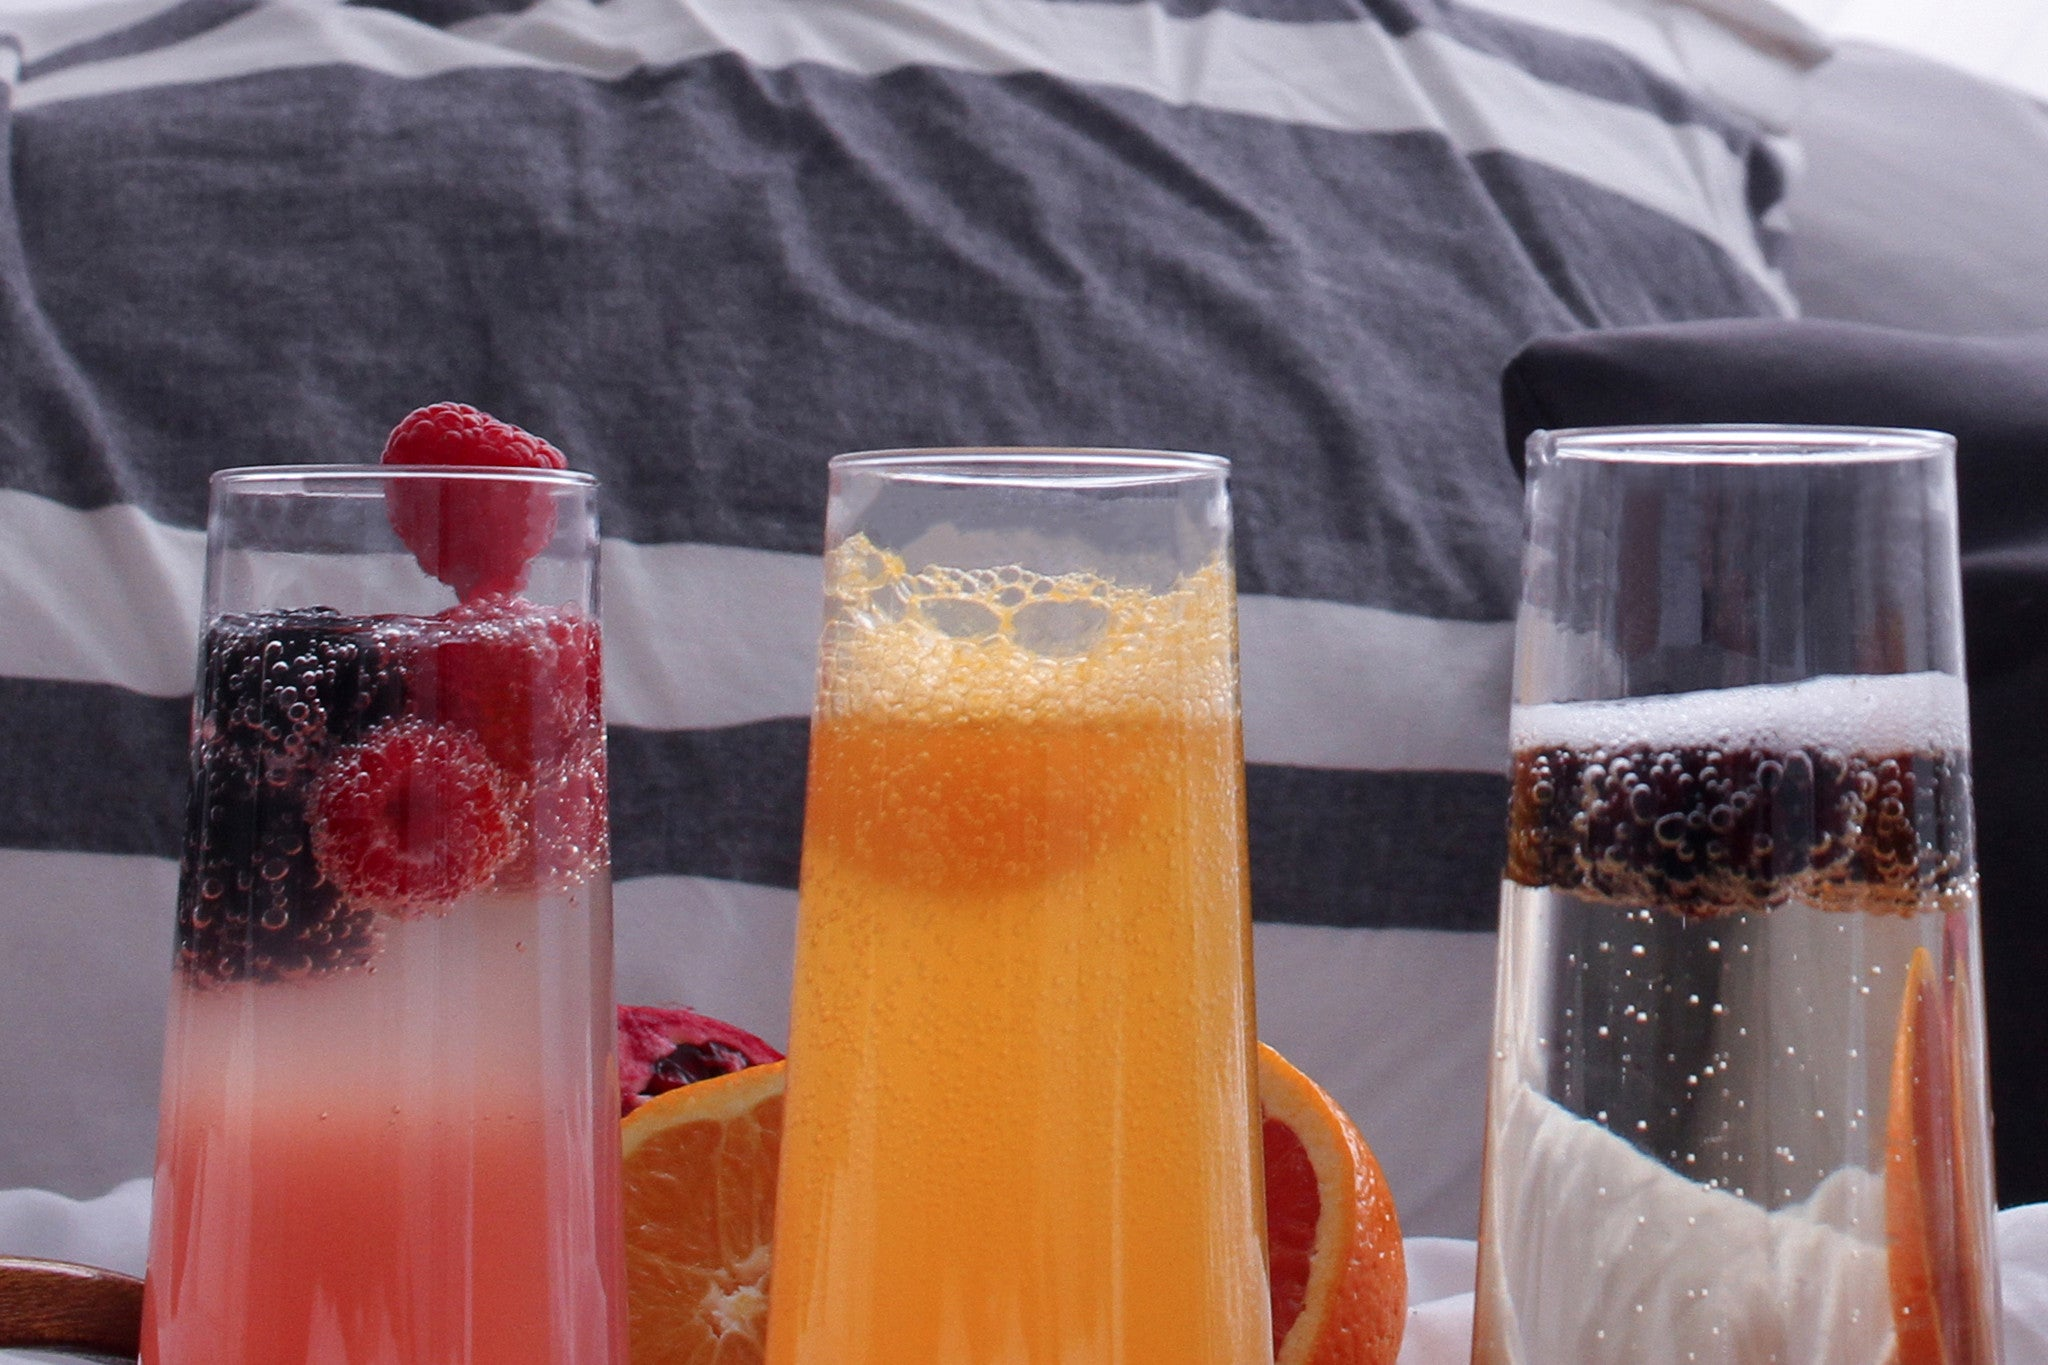 Mother's Day Mimosa recipe, Raspberry Lemonade mimosa, TOSSWARE Champagne flute